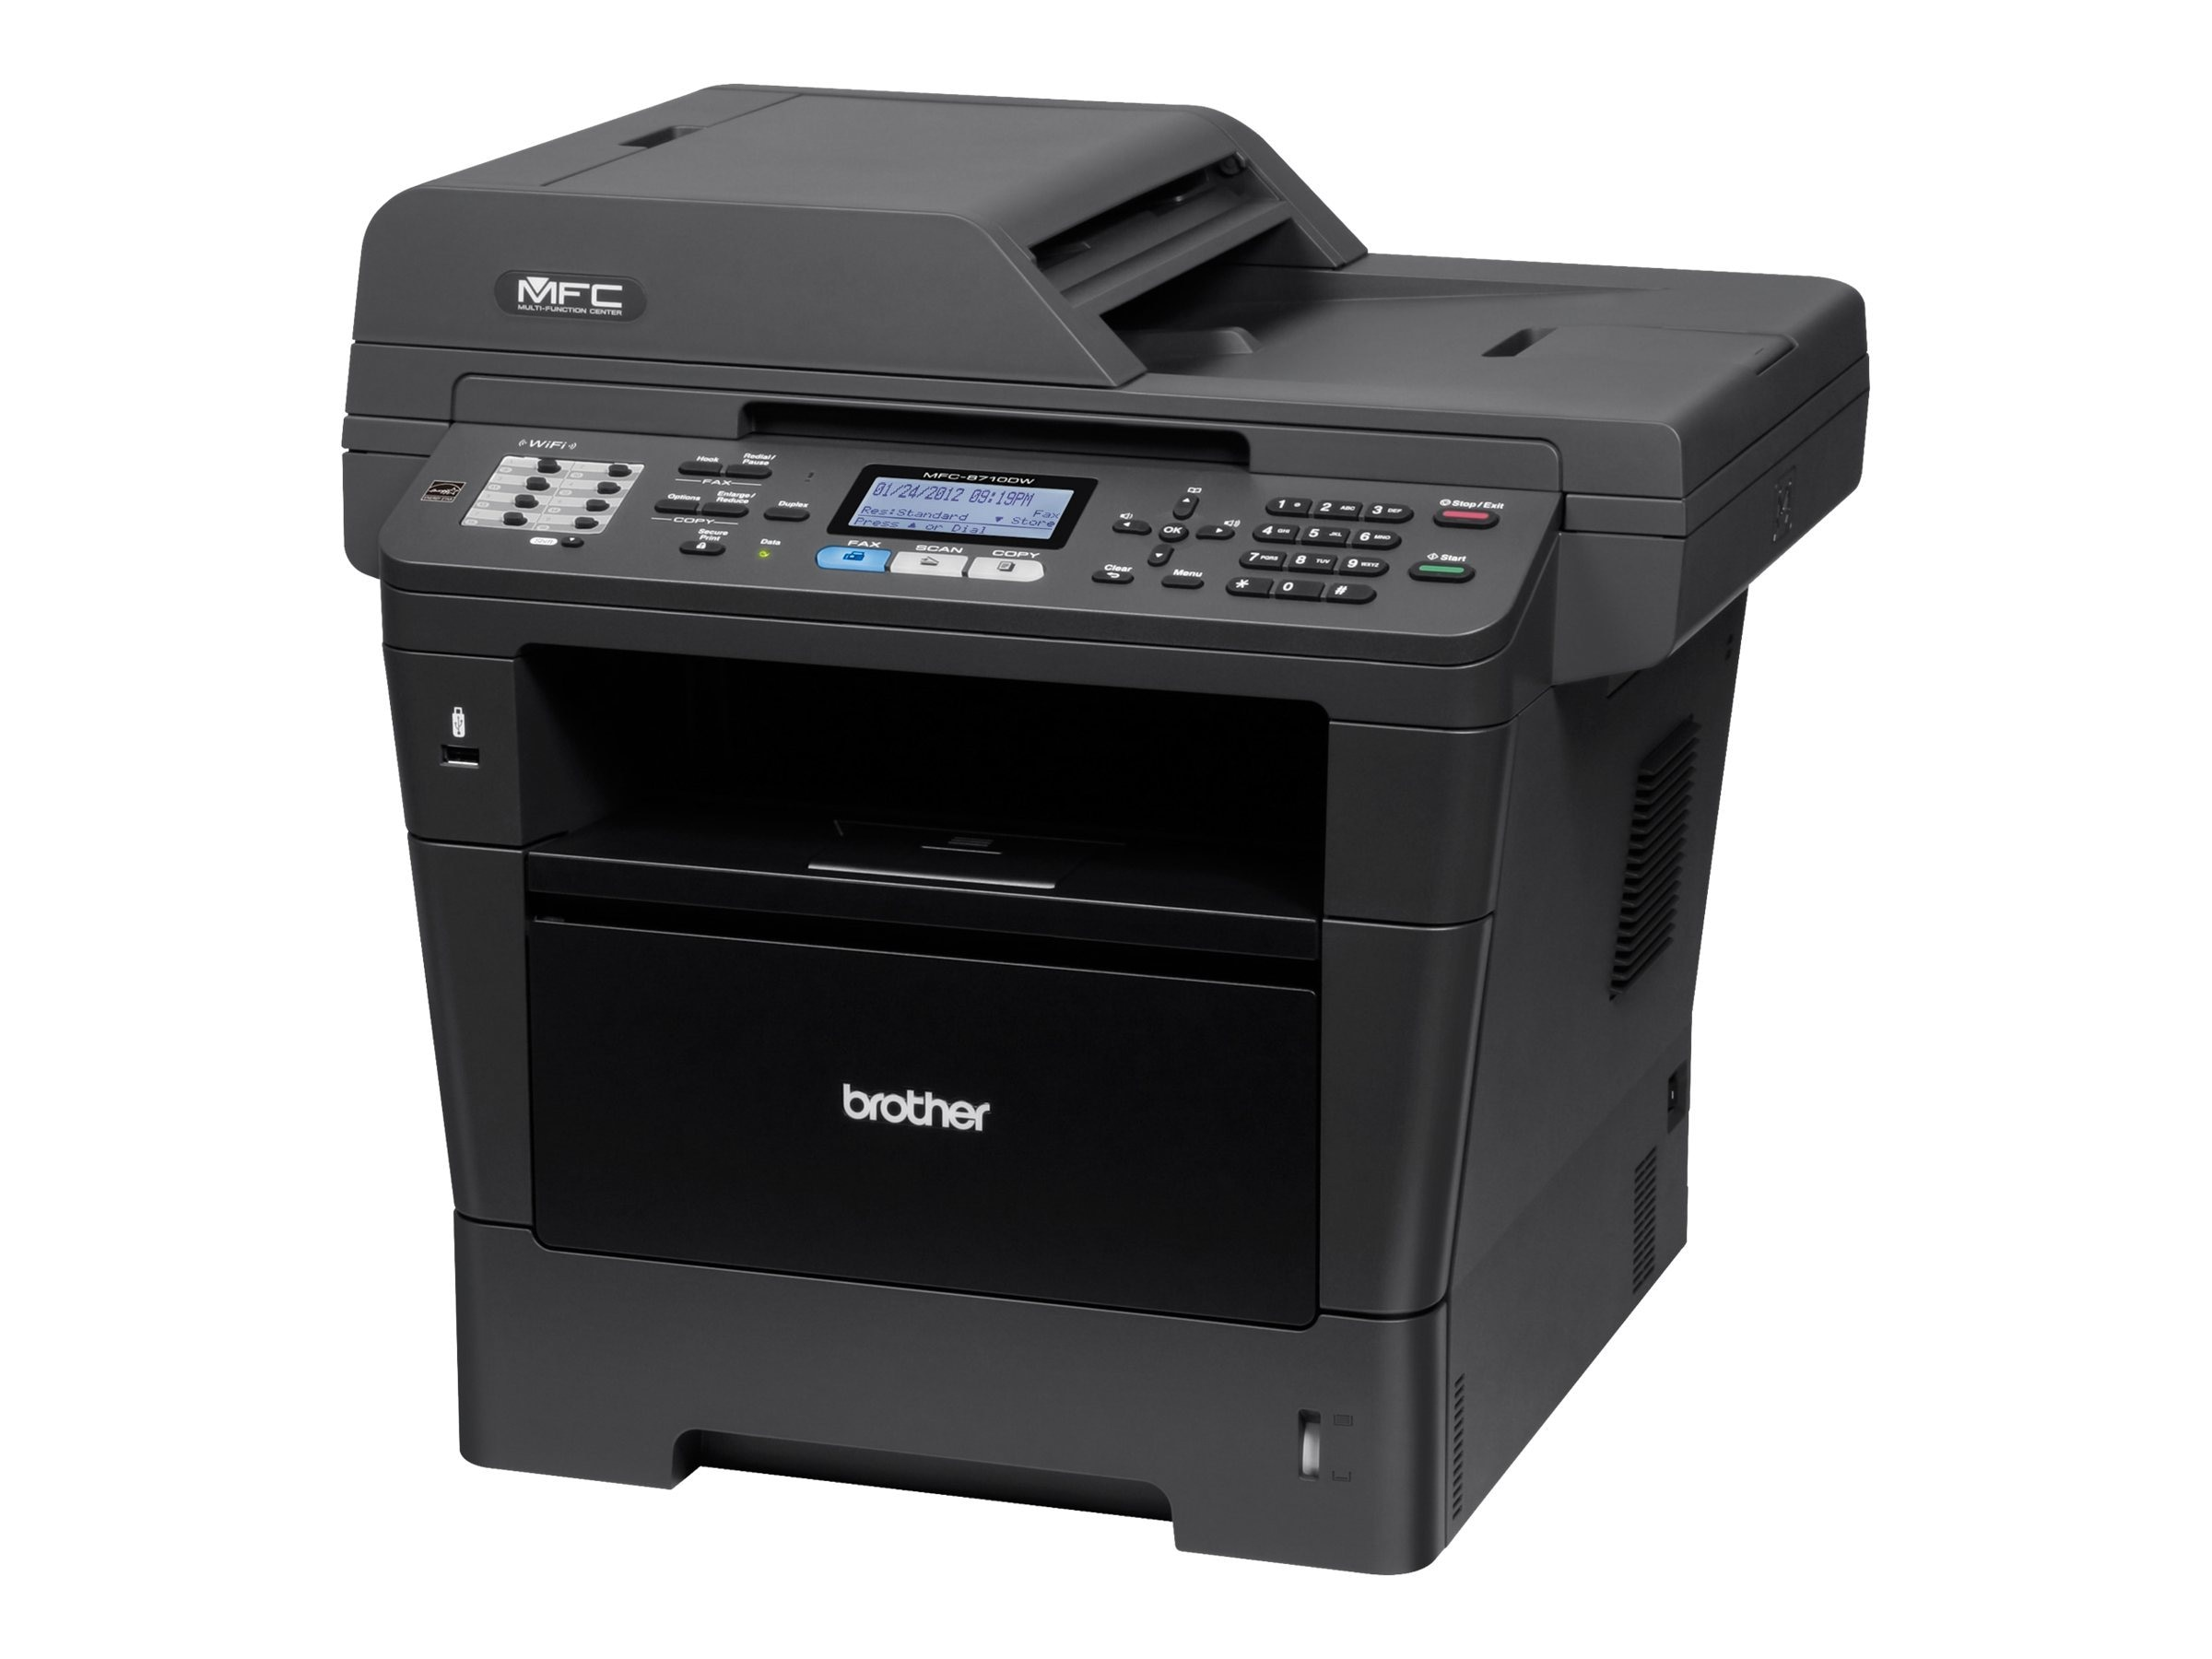 Brother MFC-8710DW Laser All-In-One